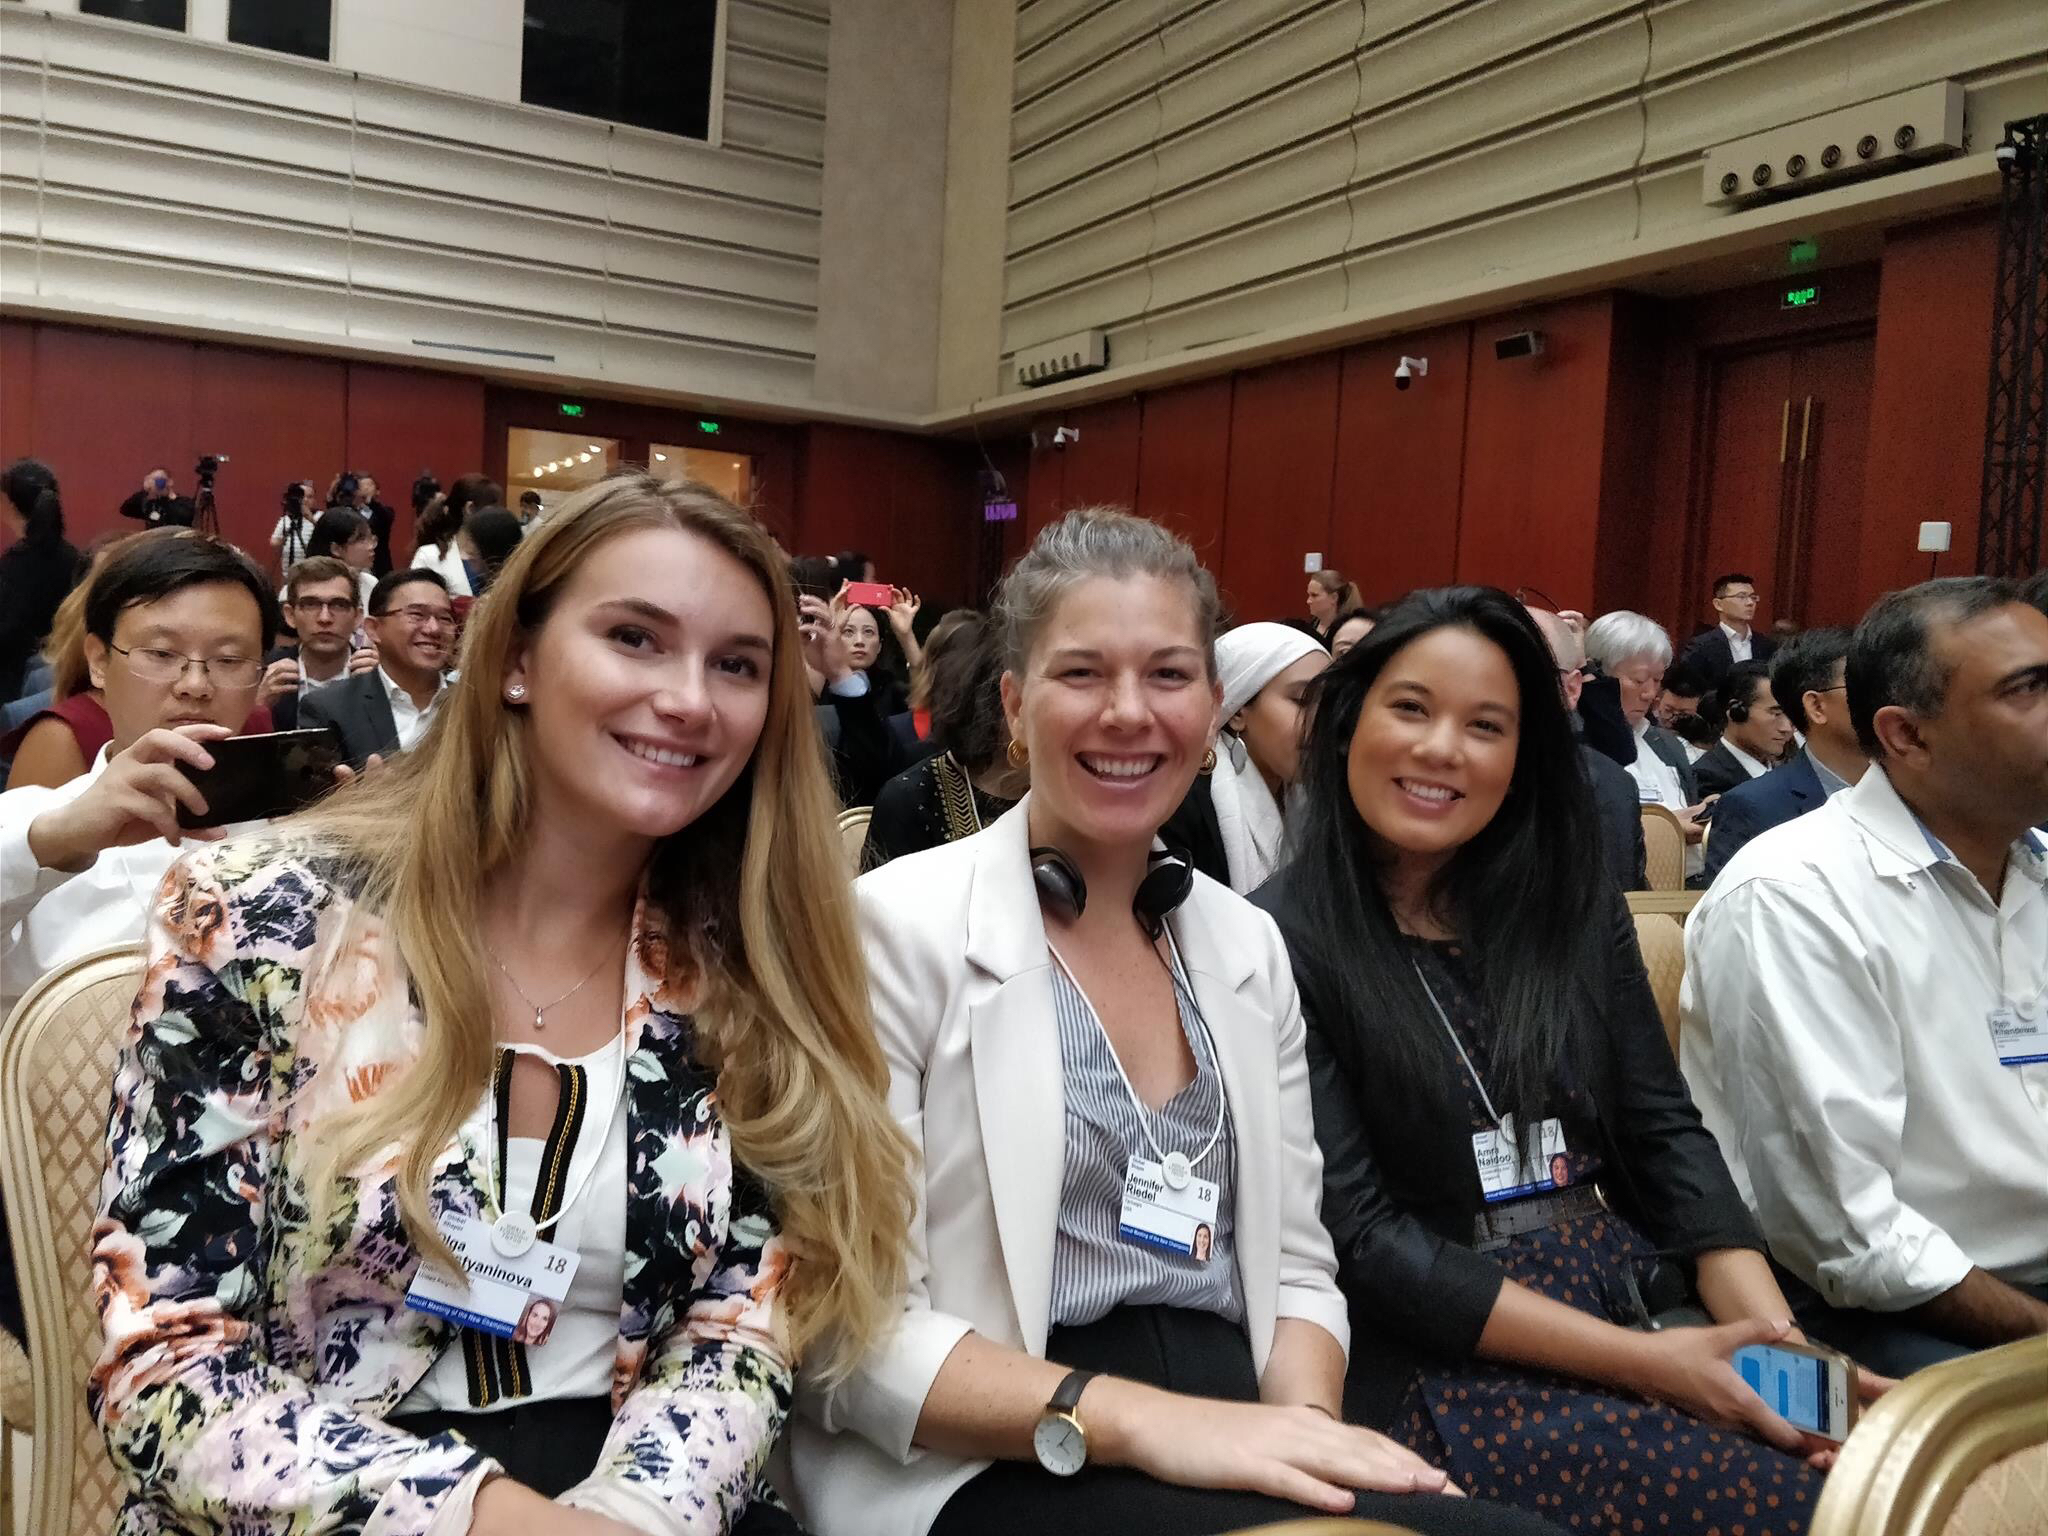 Meeting Global Shapers from around the world